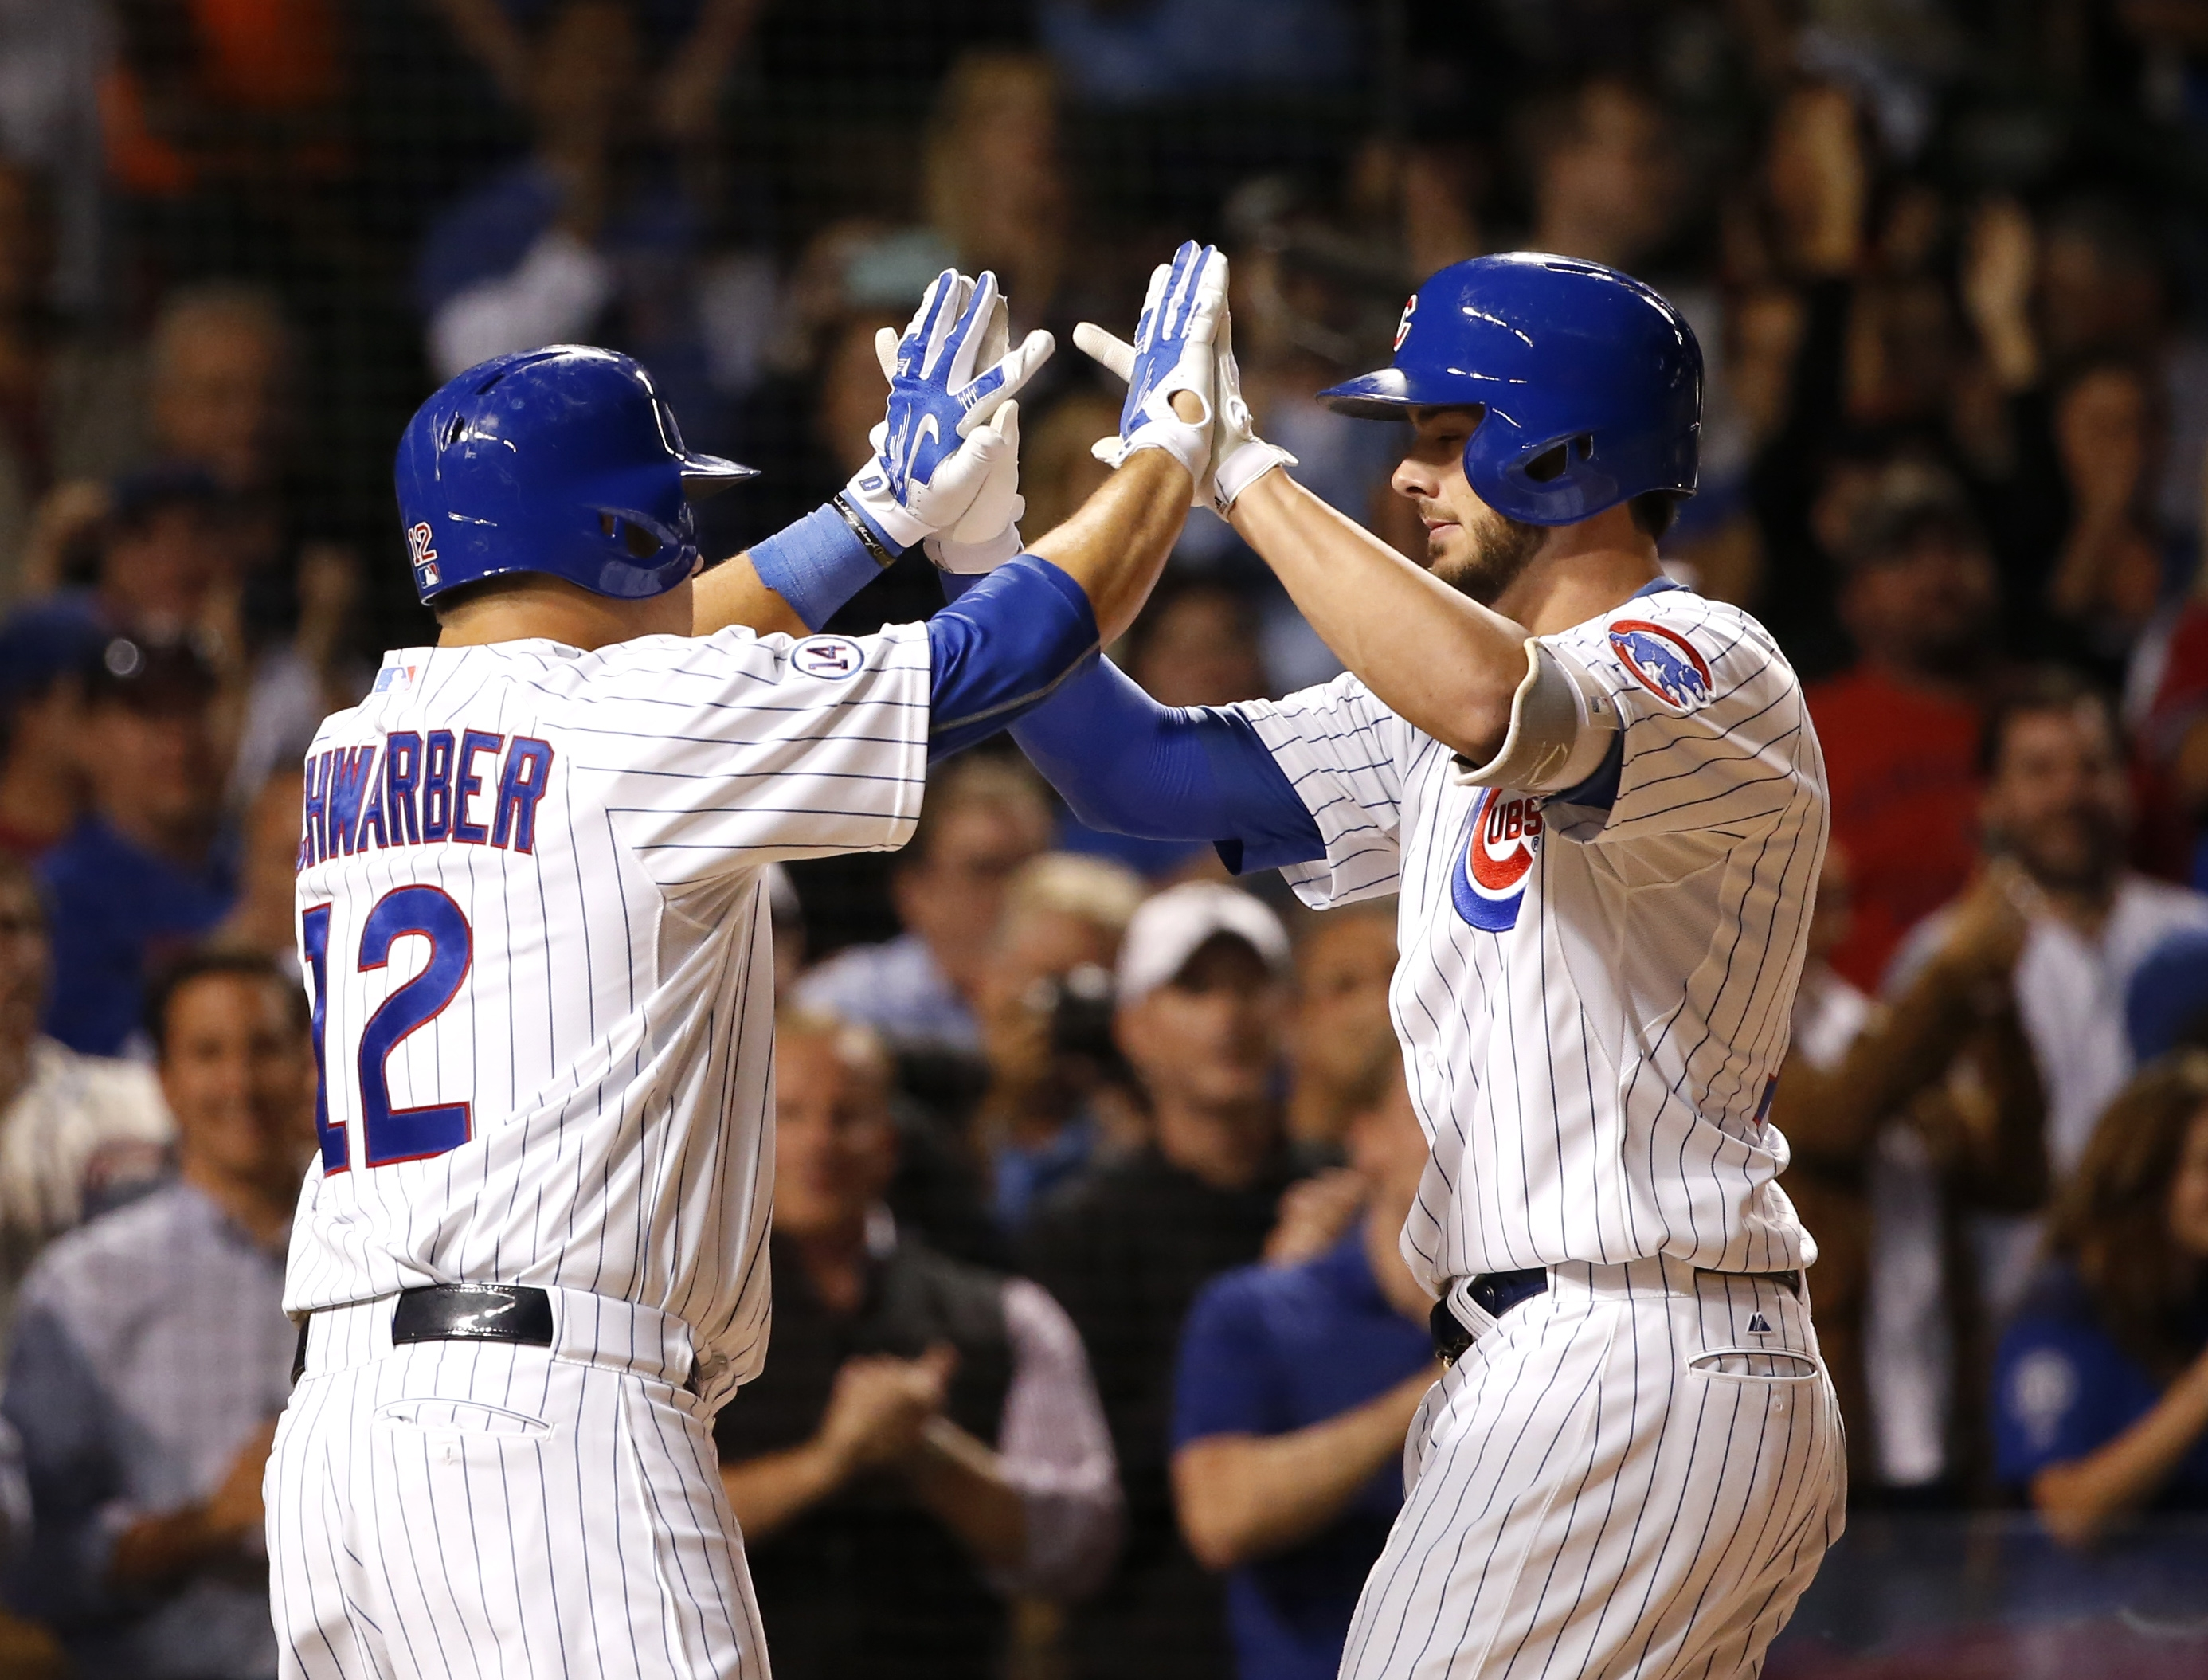 Chicago Cubs' Kris Bryant, right, celebrates with Kyle Schwarber after the pair scored on Bryant's two-run home run off Milwaukee Brewers starting pitcher Tyler Cravy during the third inning of a baseball game Tuesday, Sept. 22, 2015, in Chicago. (AP Phot